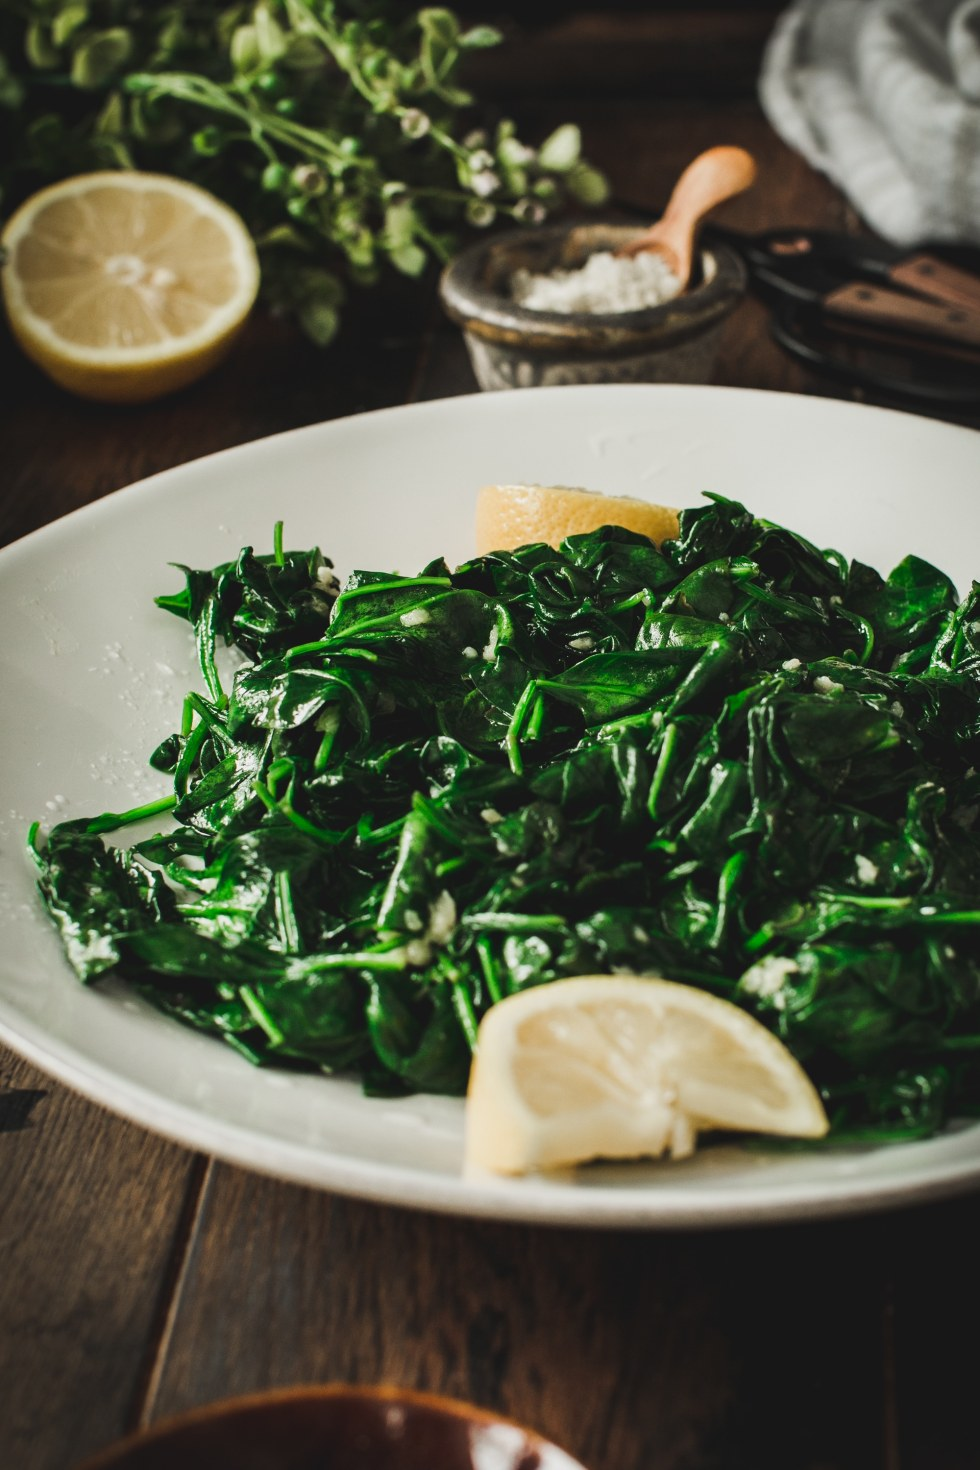 garlic sauteed spinach on white plate with lemons